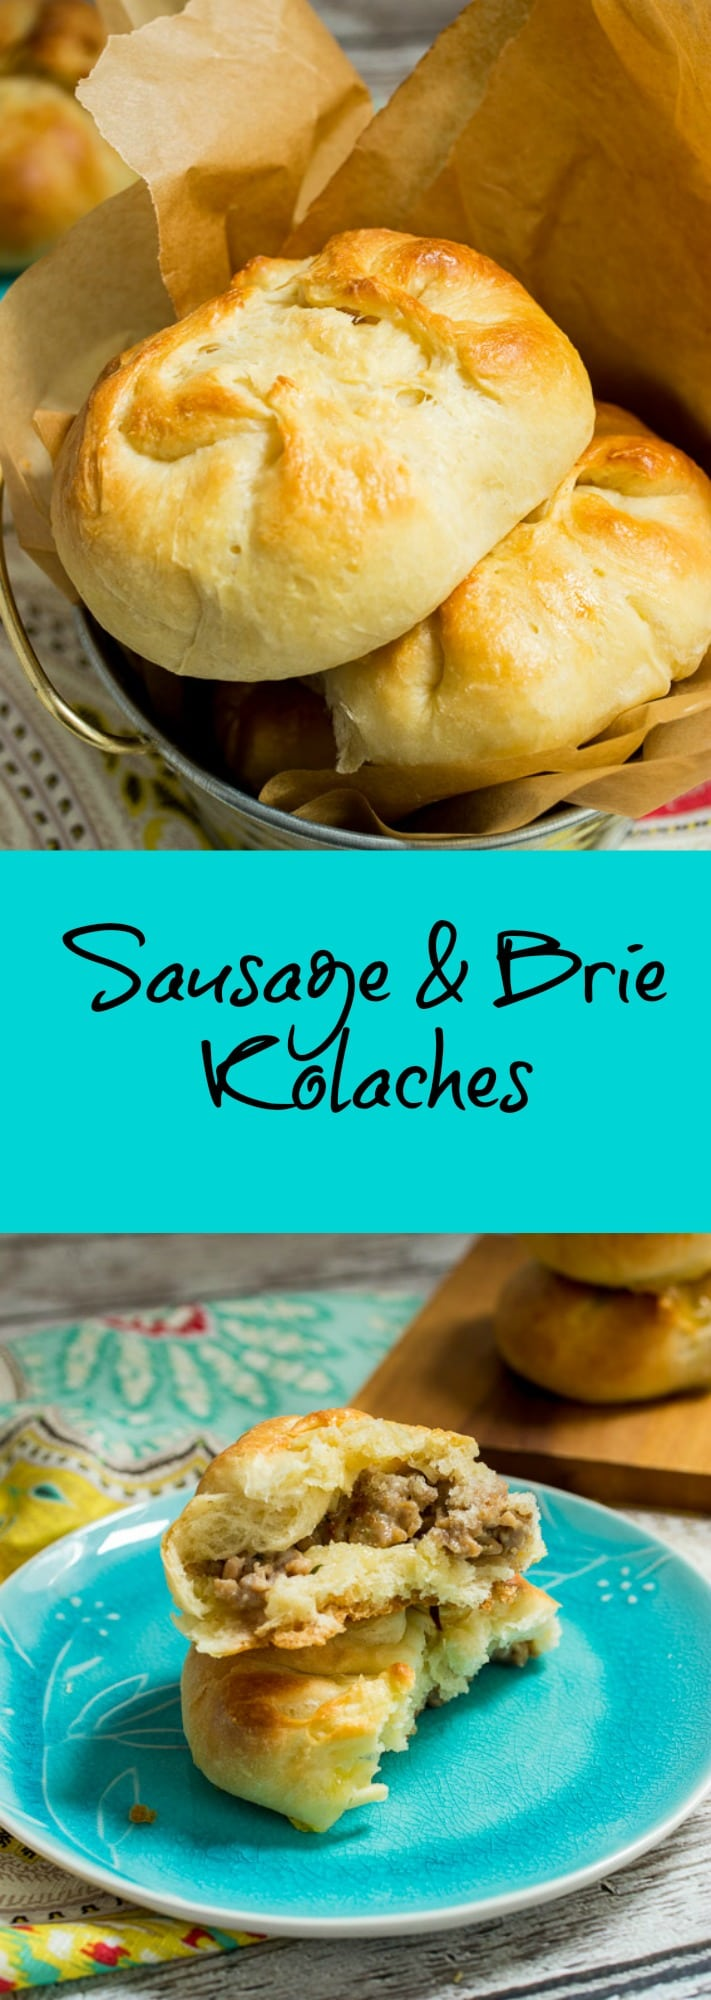 Sausage and Brie Kolaches | girlinthelittleredkitchen.com